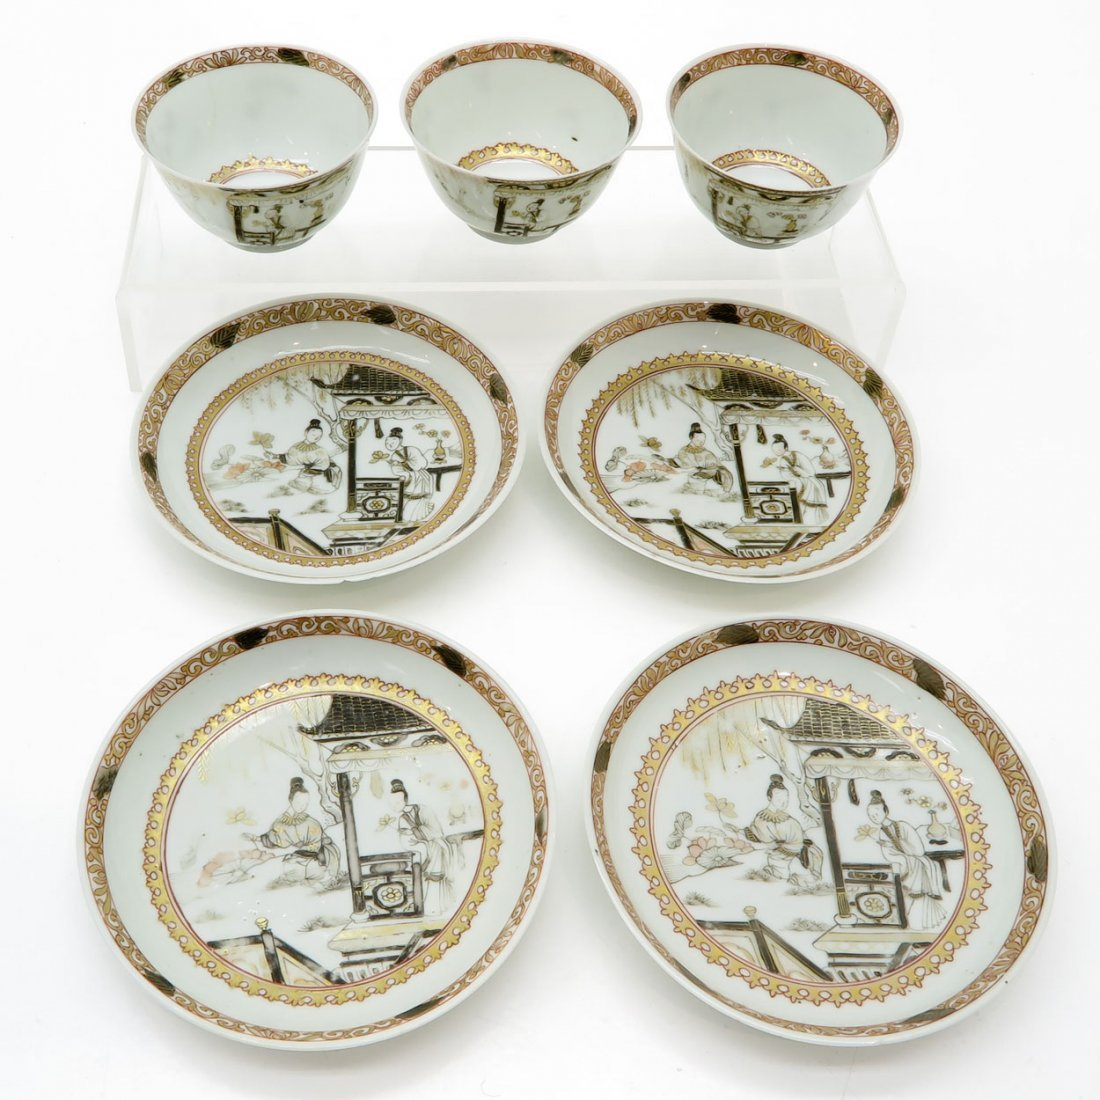 18th Century Encre de Chine Cups and Saucers